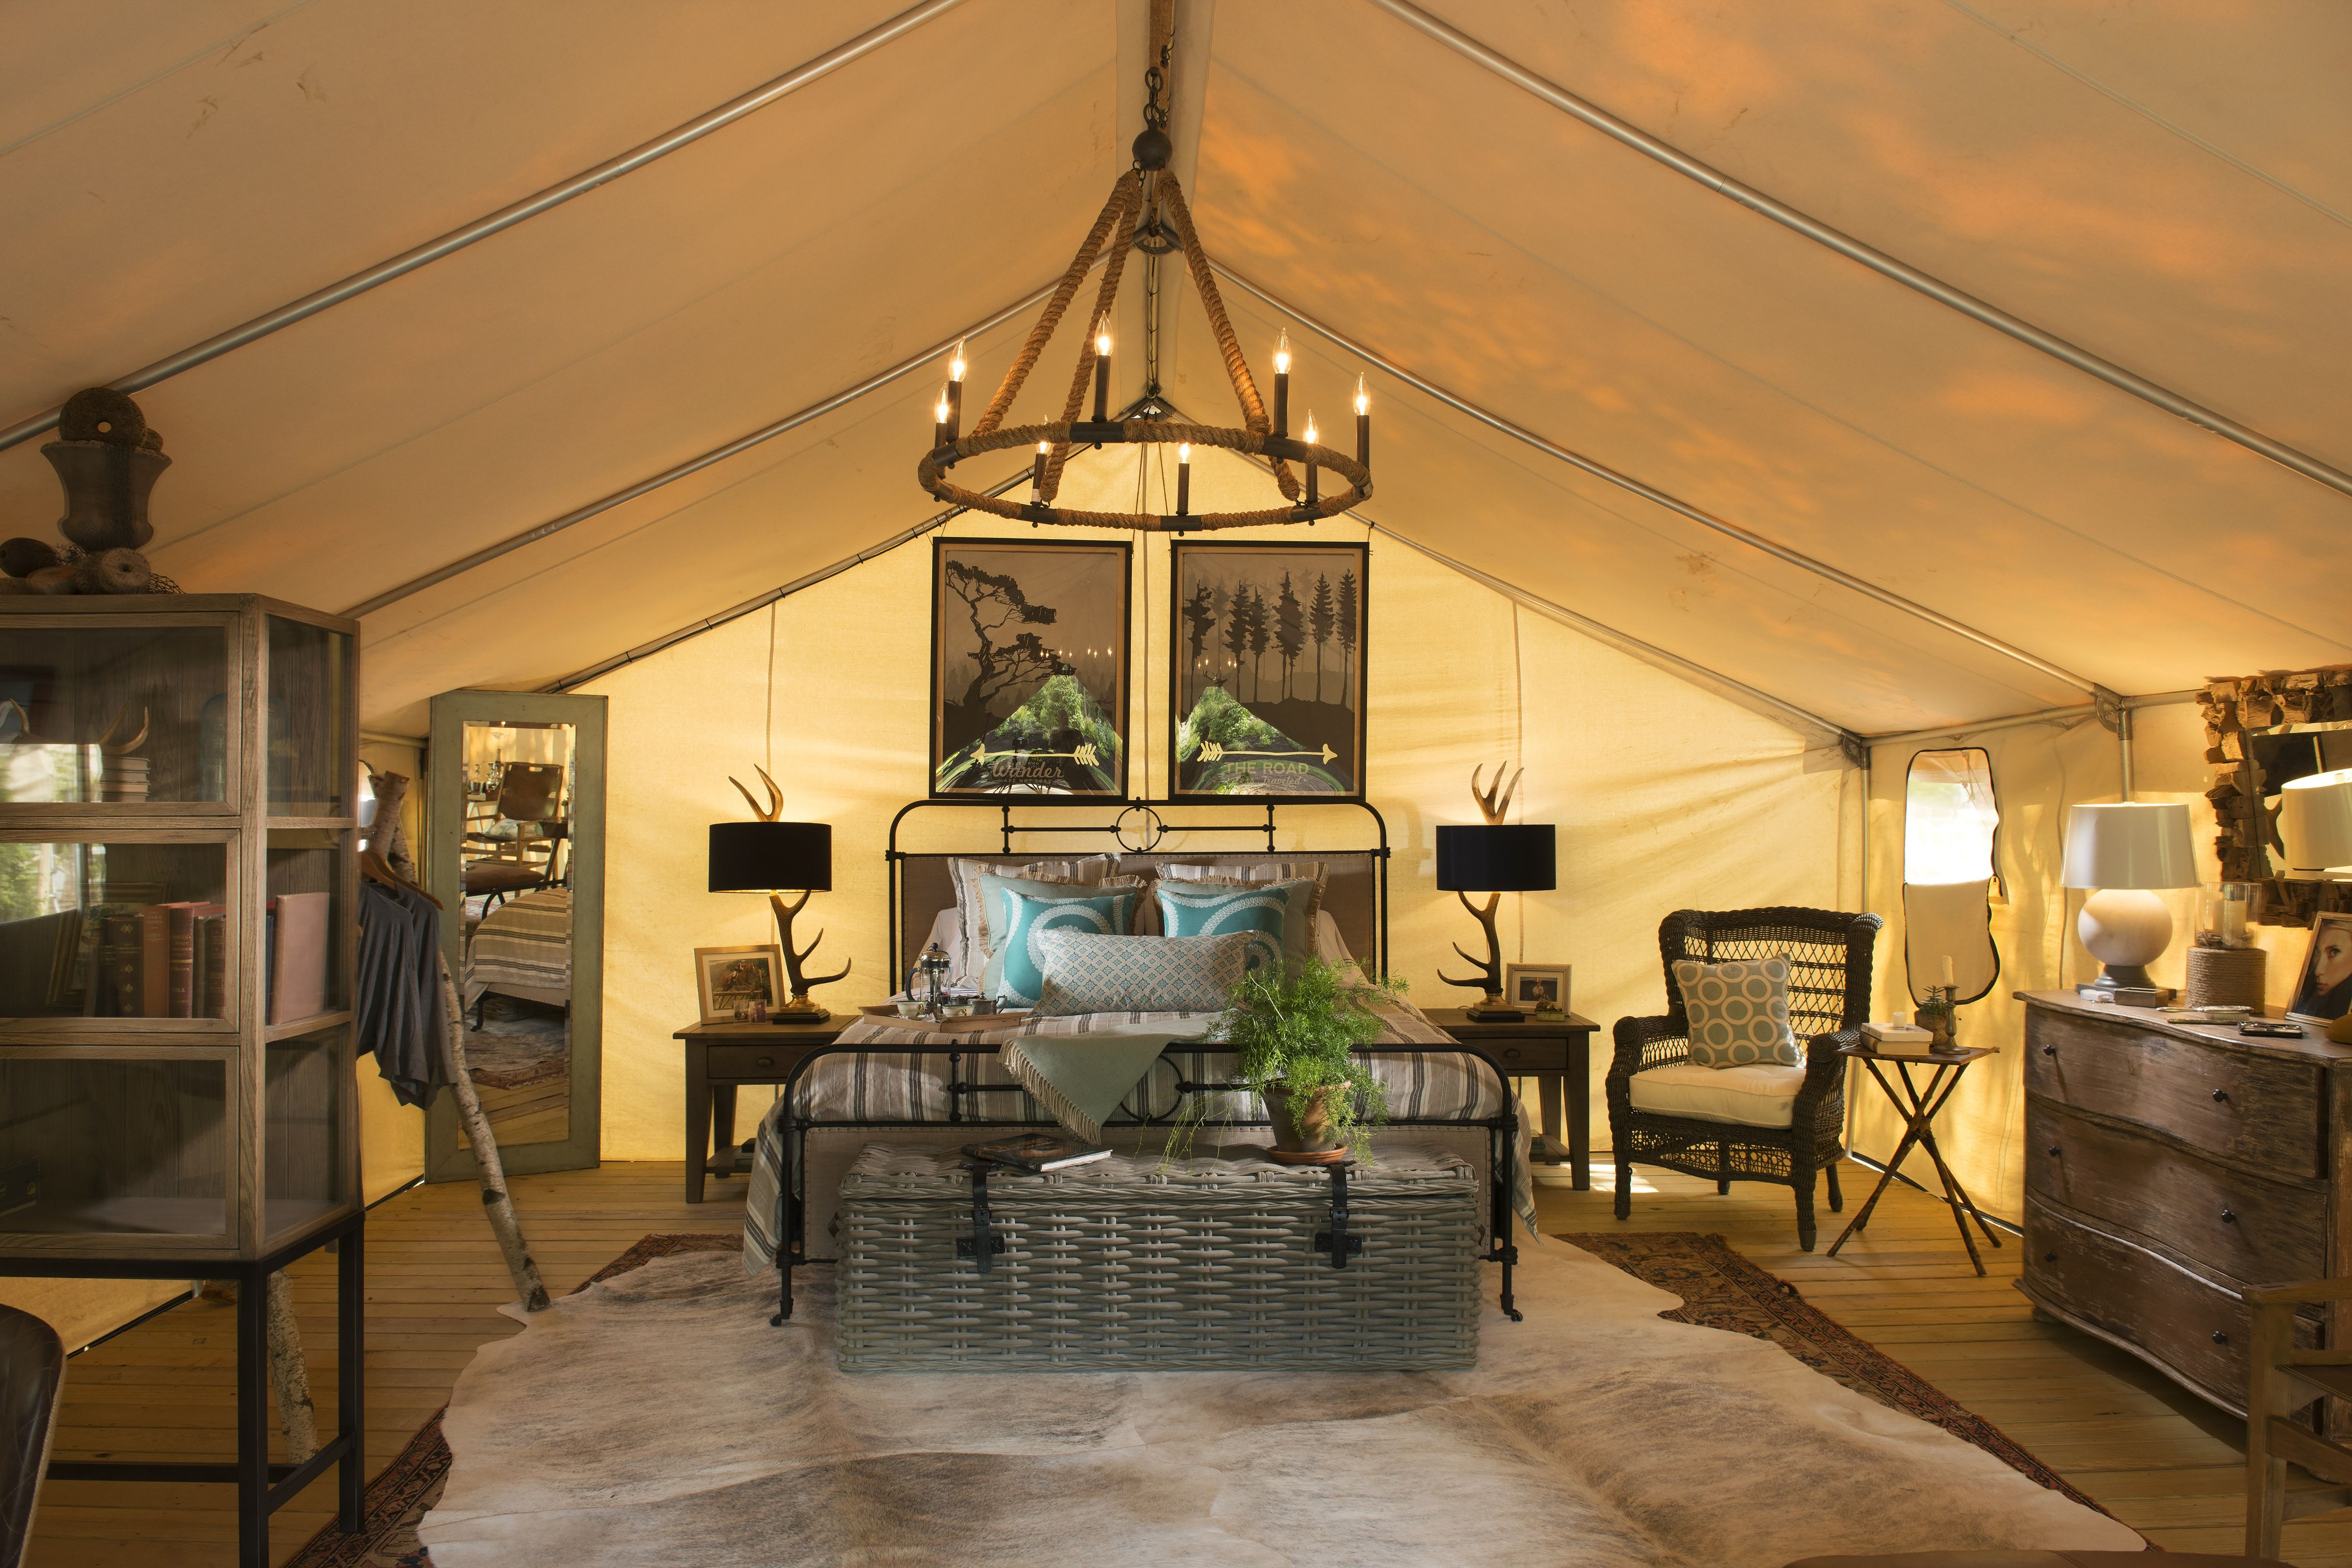 Glamping Sites That Let You Experience Nature In The Lap